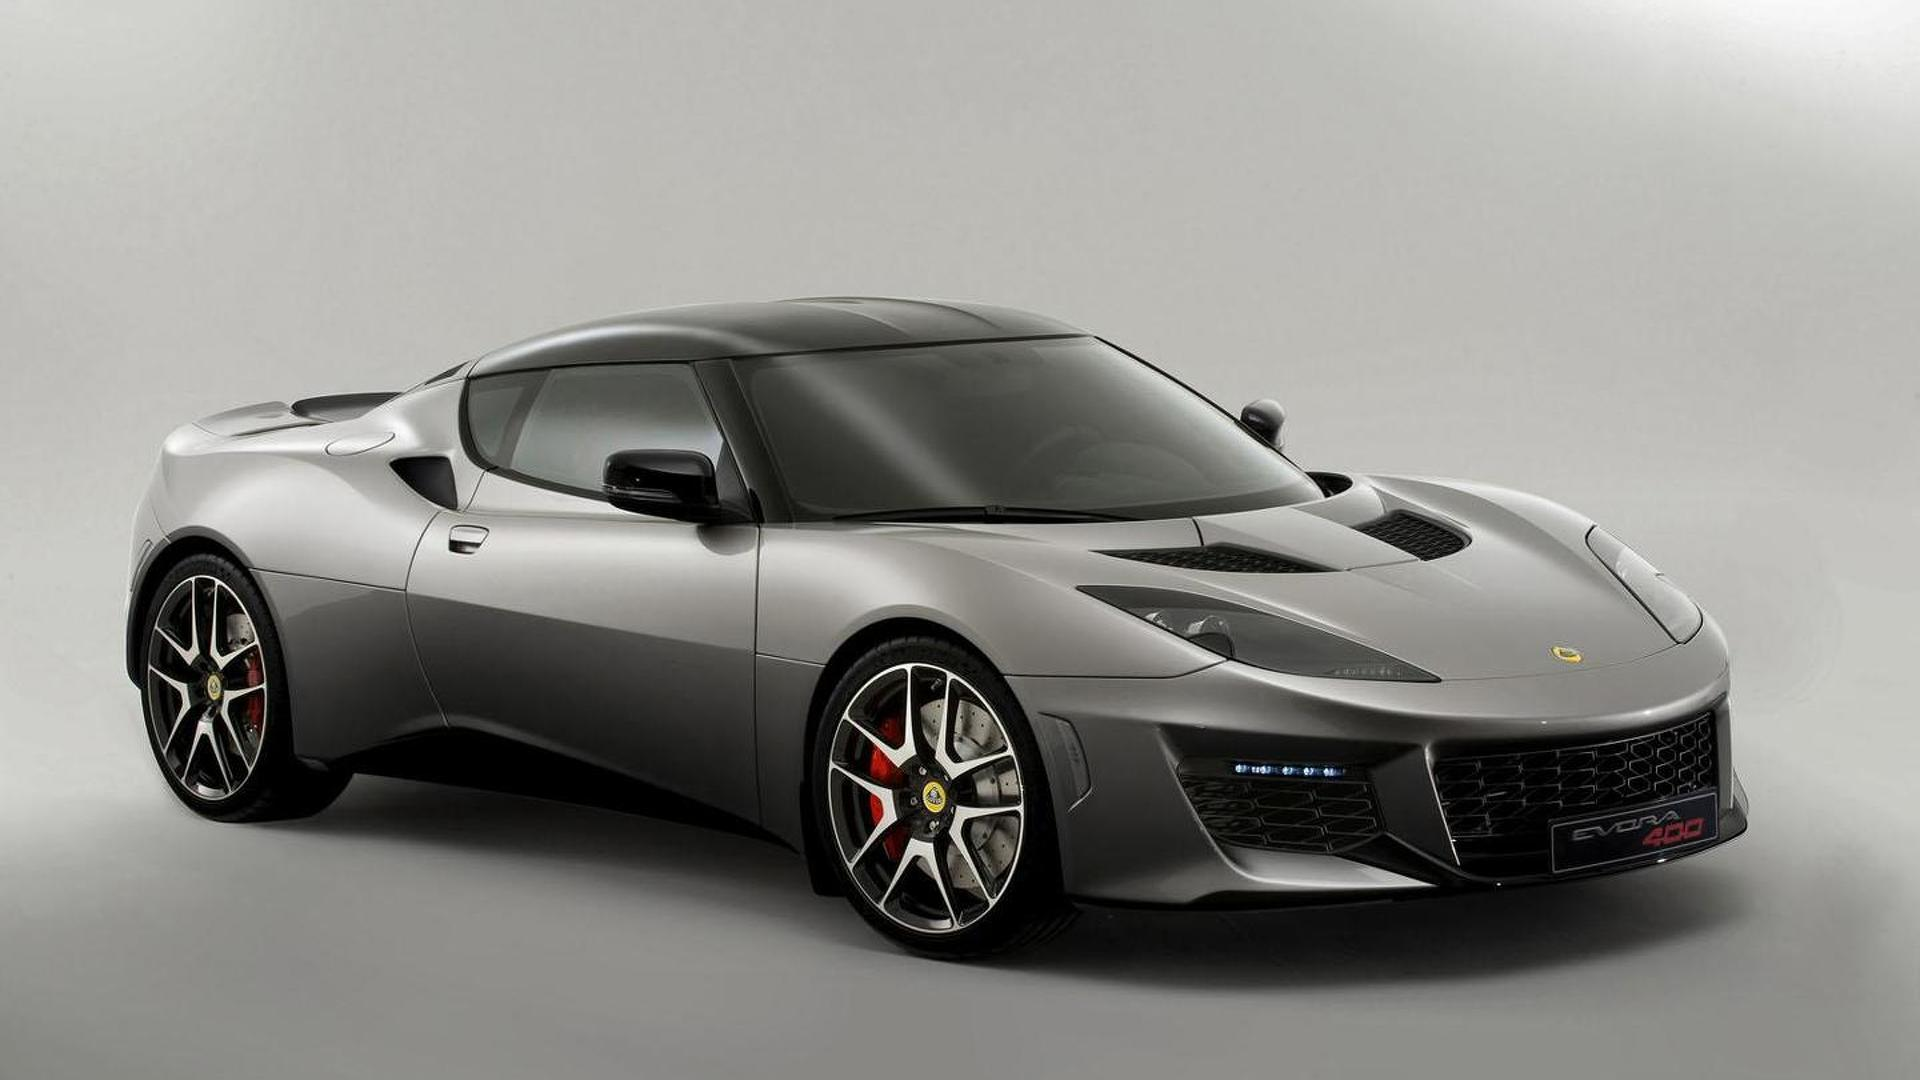 Lotus Evora 400 unveiled, is the most powerful Lotus ever created